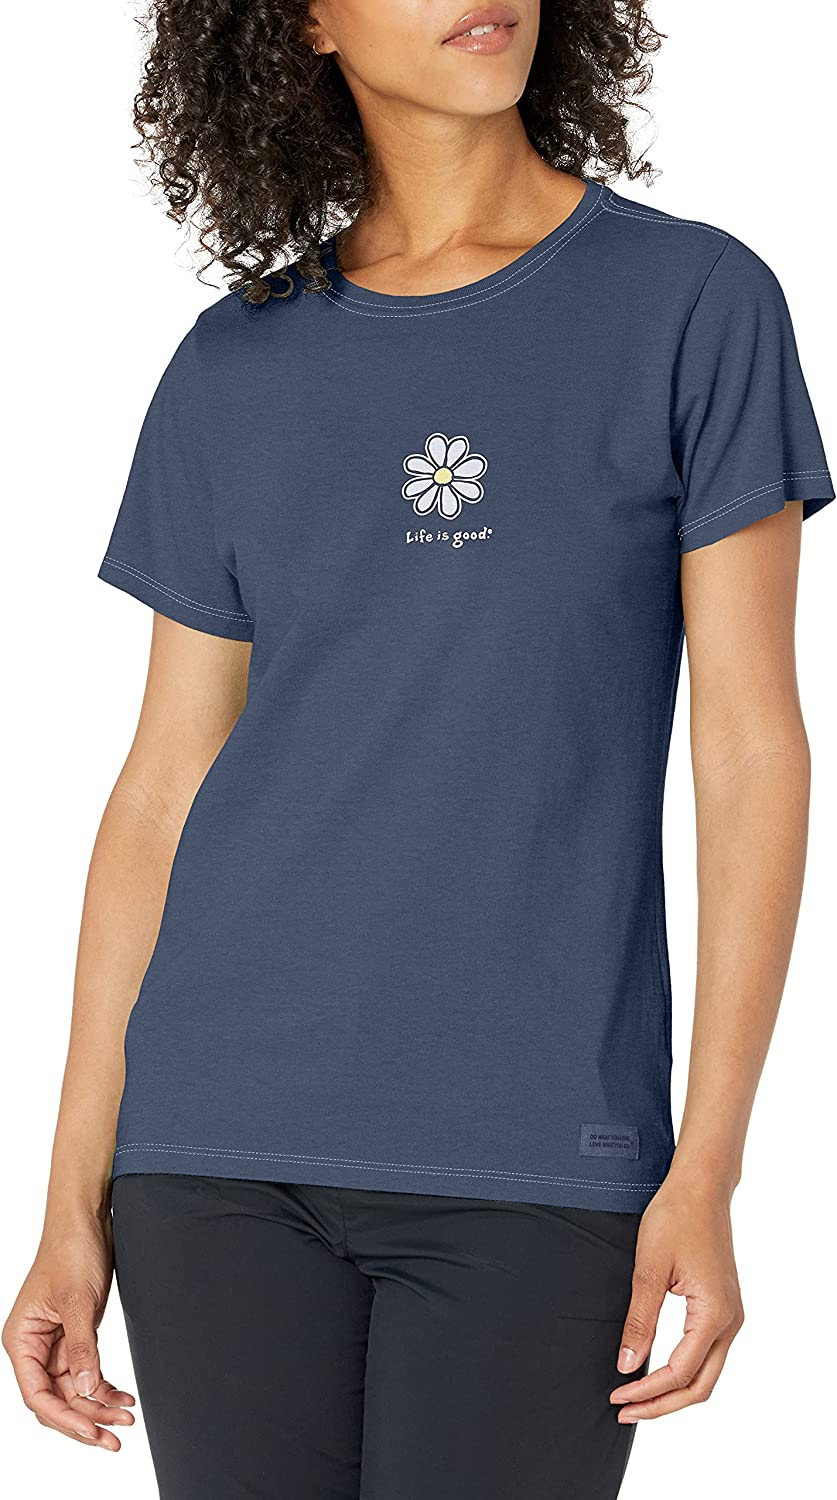 Life is Good Daisy Graphic T-Shirt Vintage Collection